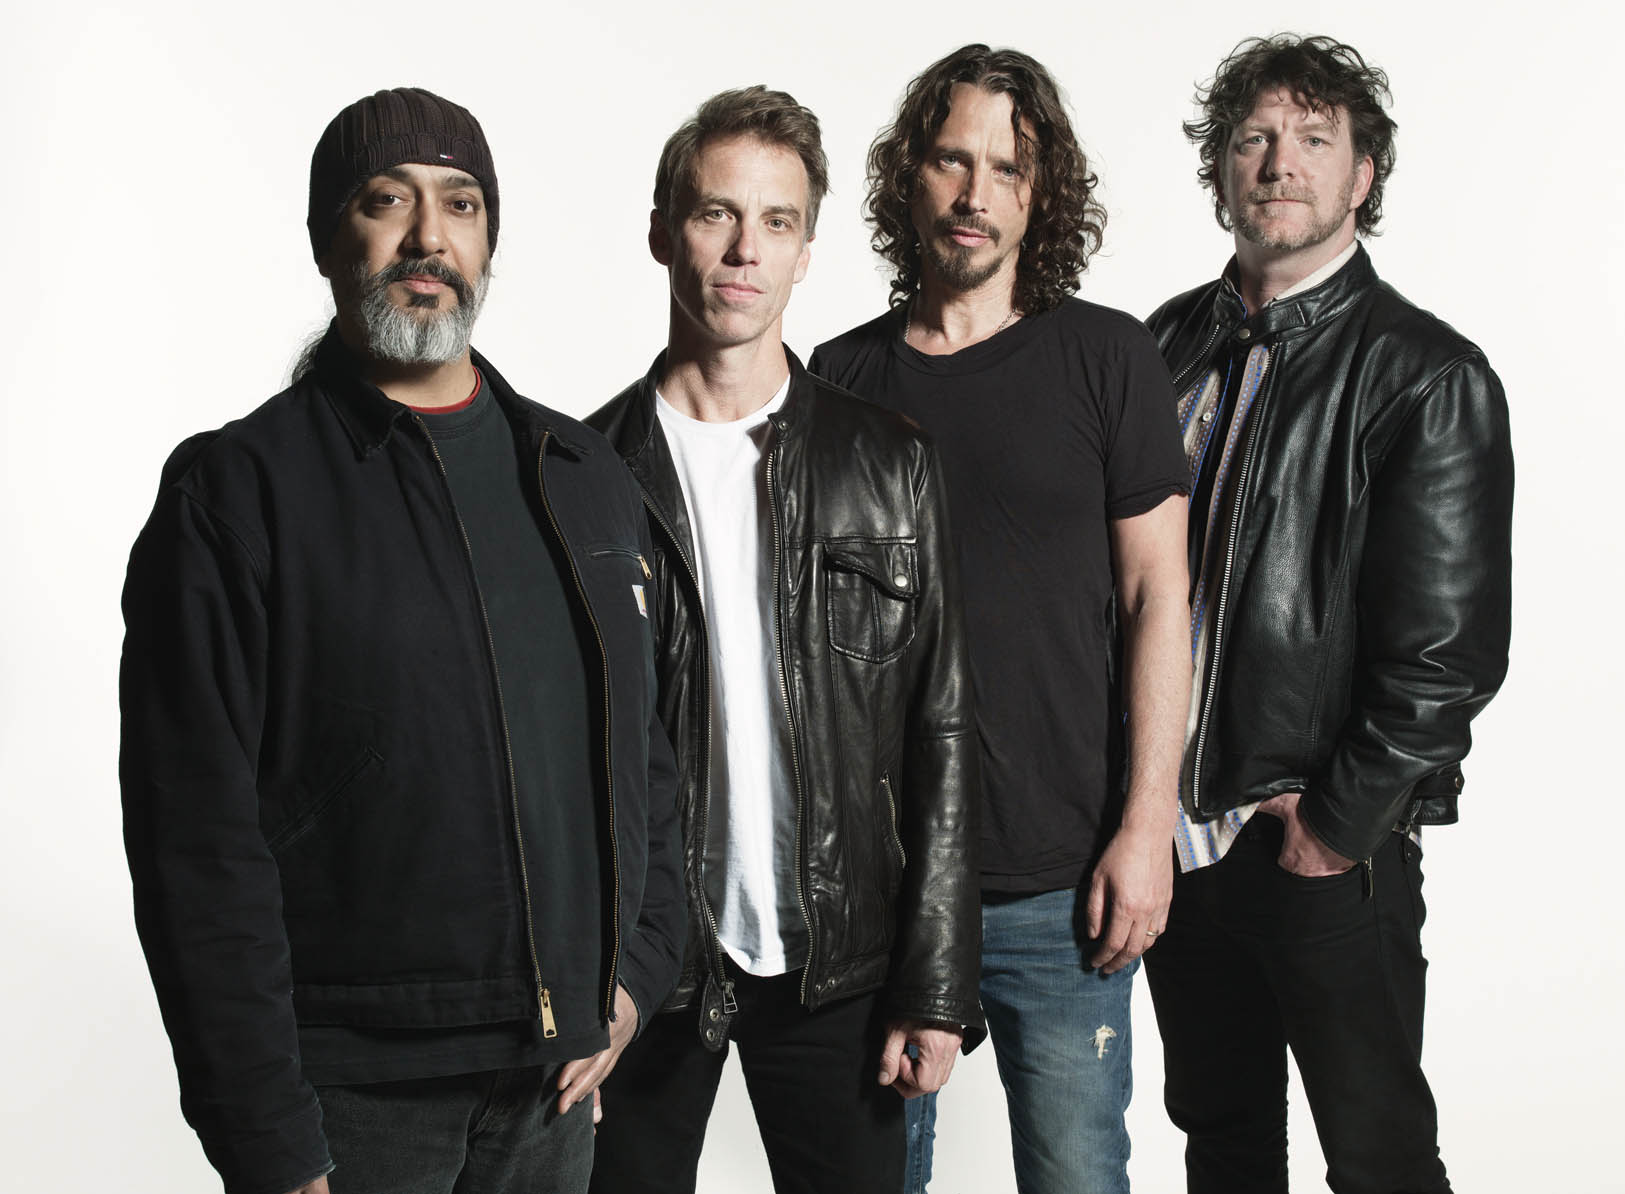 CITI-EXCLUSIVE SOUNDGARDEN CONCERT COMING TO NYC